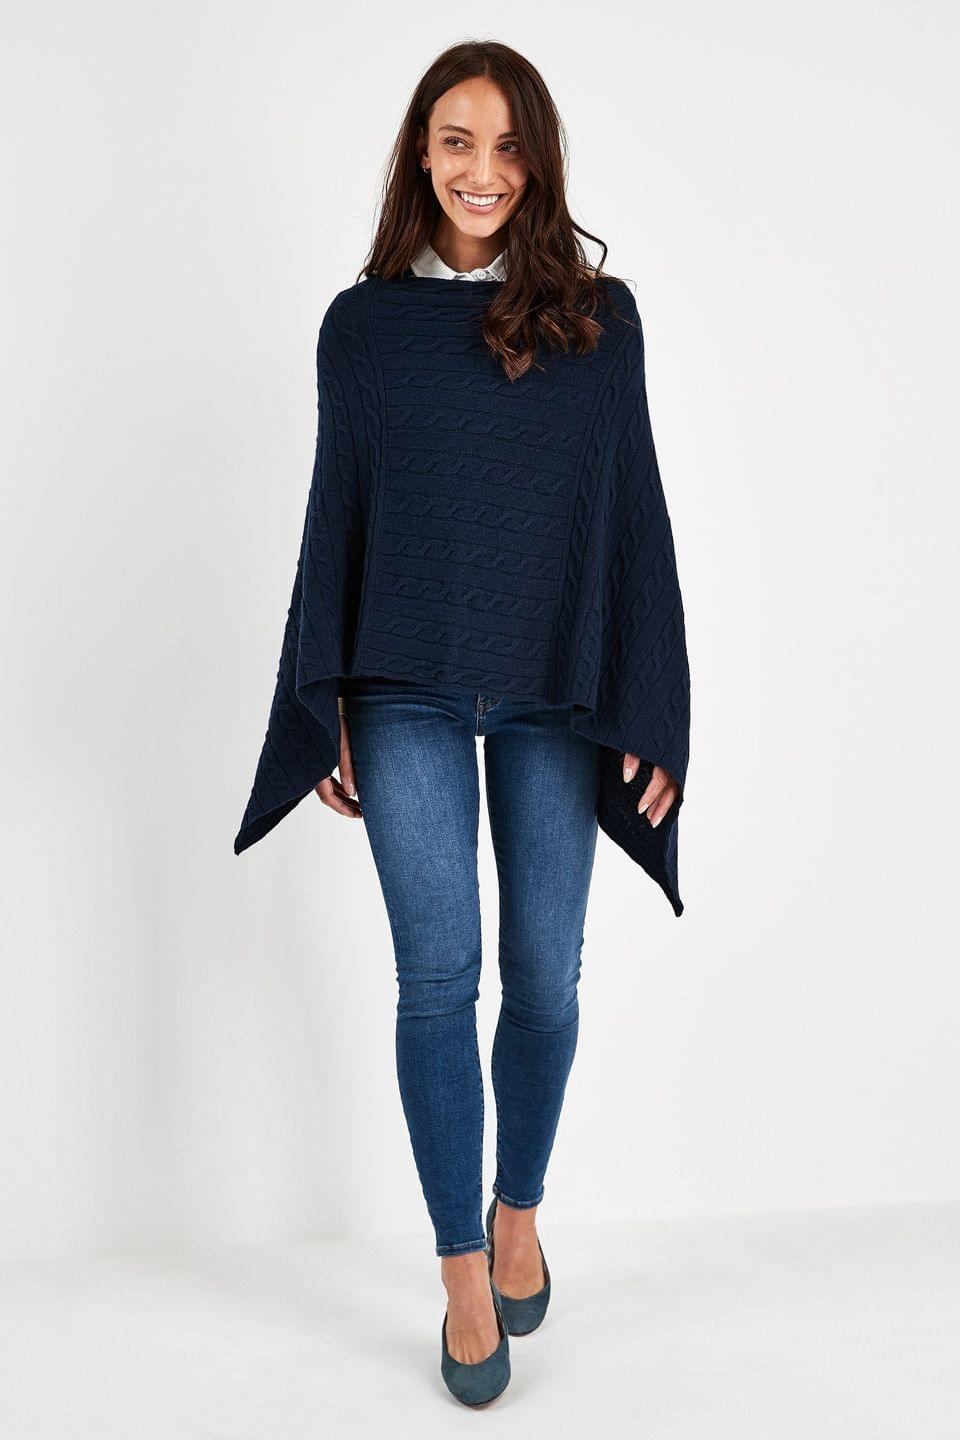 Women's GANT Navy Lambswool Cable Poncho